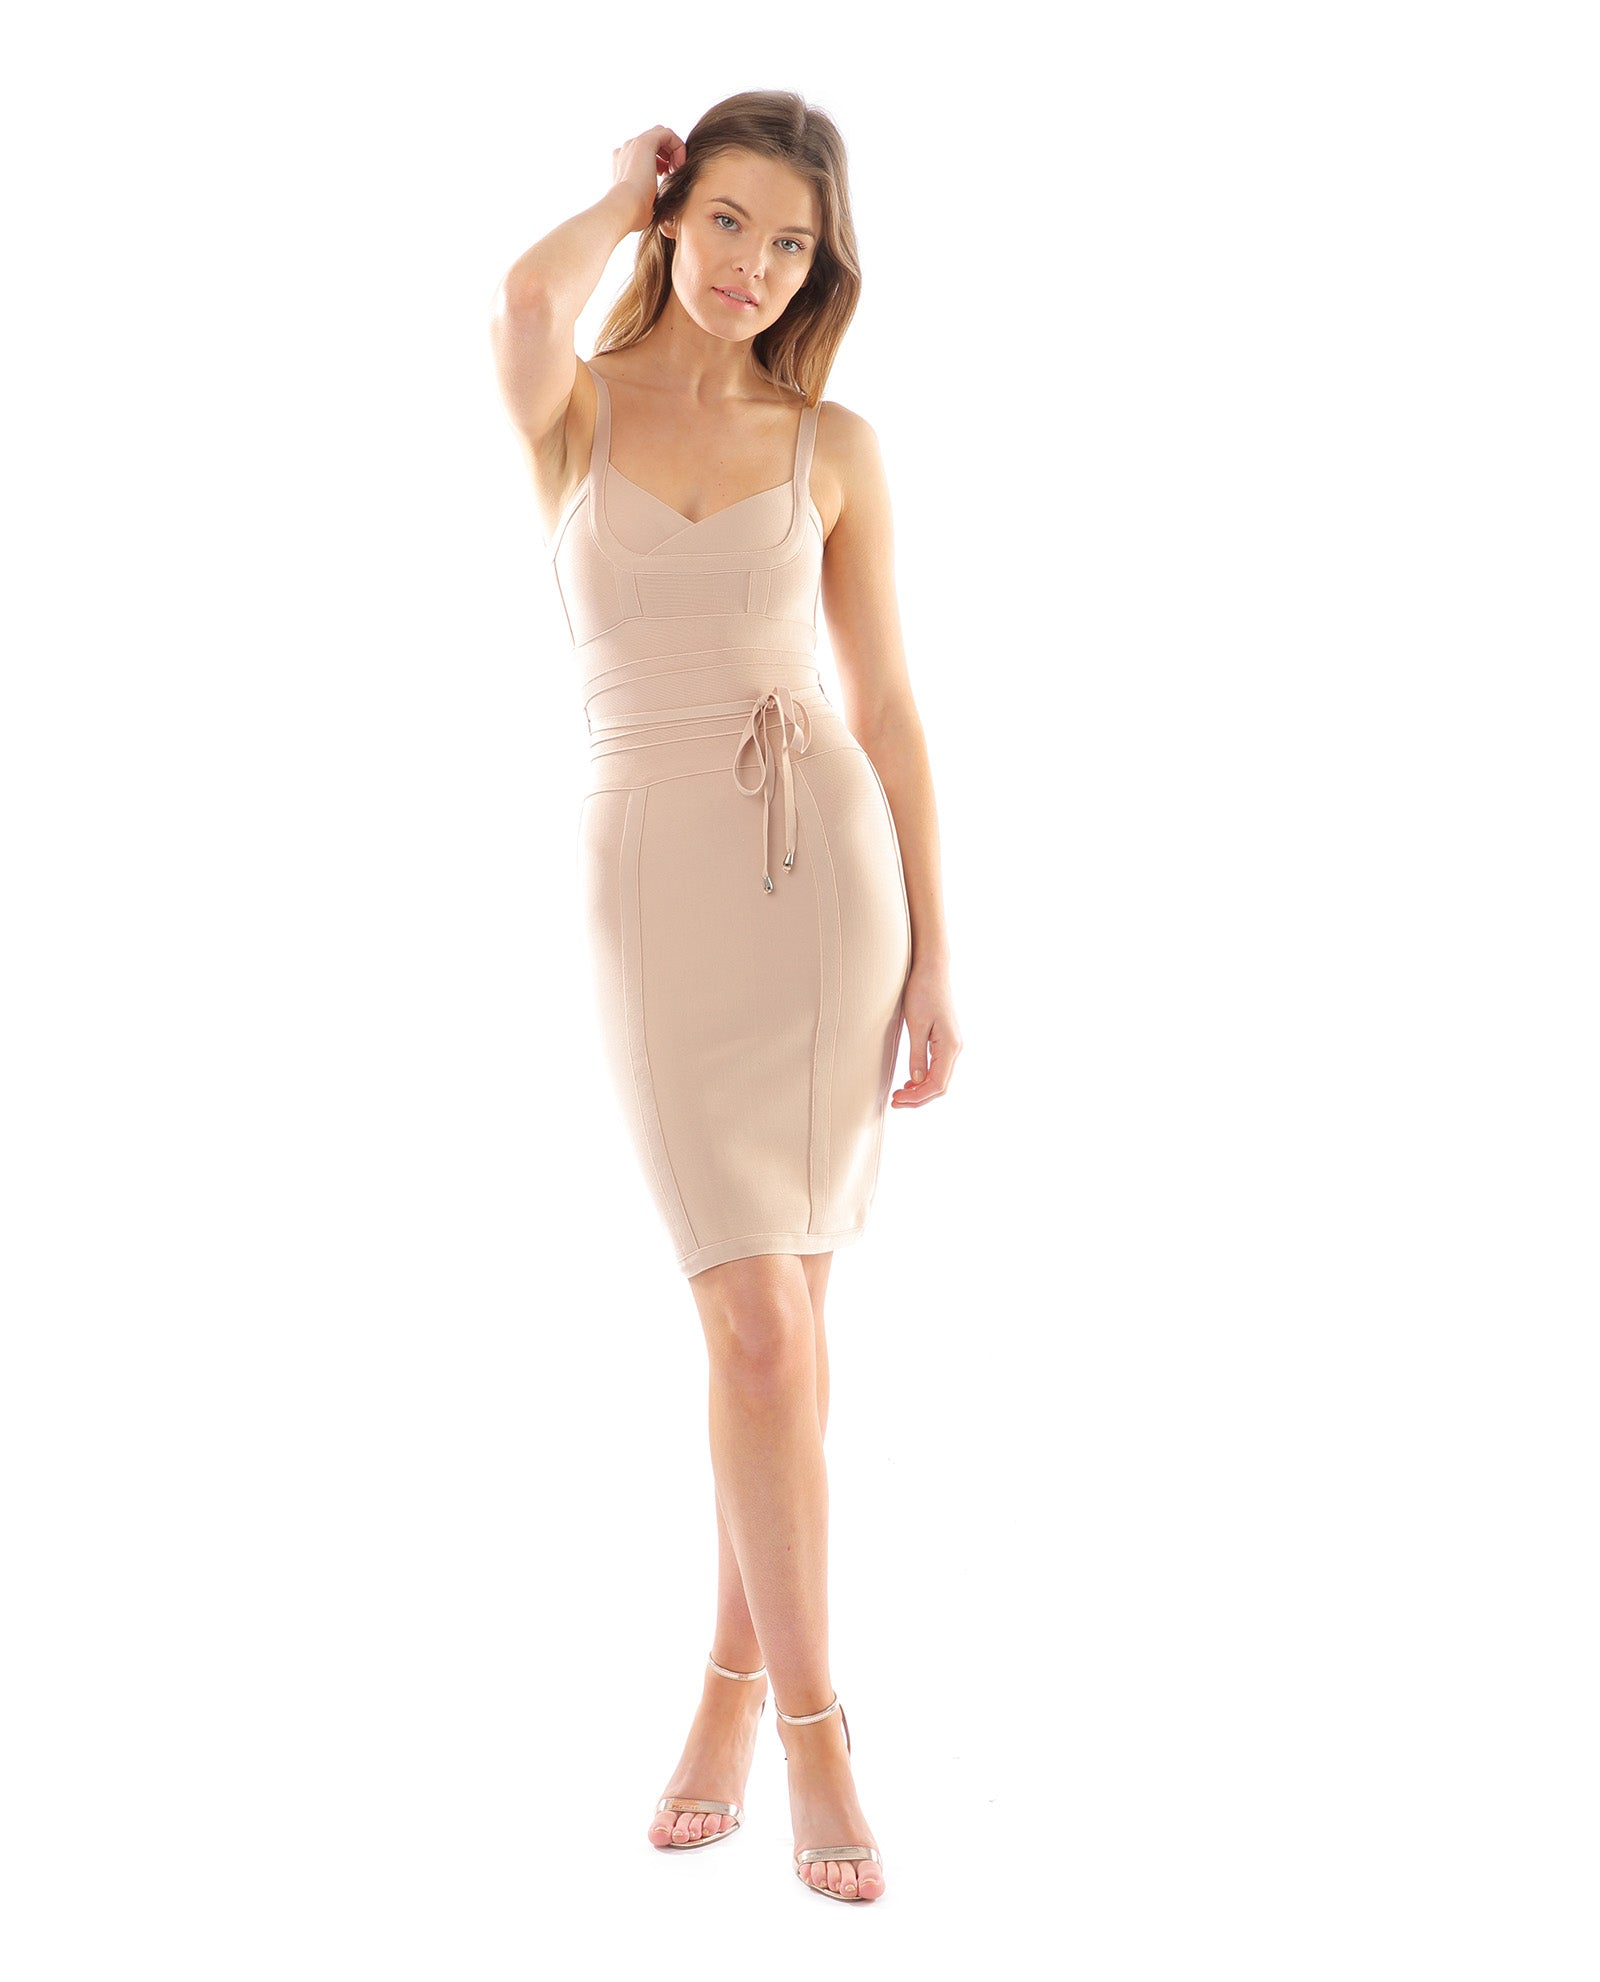 Rent dress | Nude bodycon dress | Hirestreetuk.com